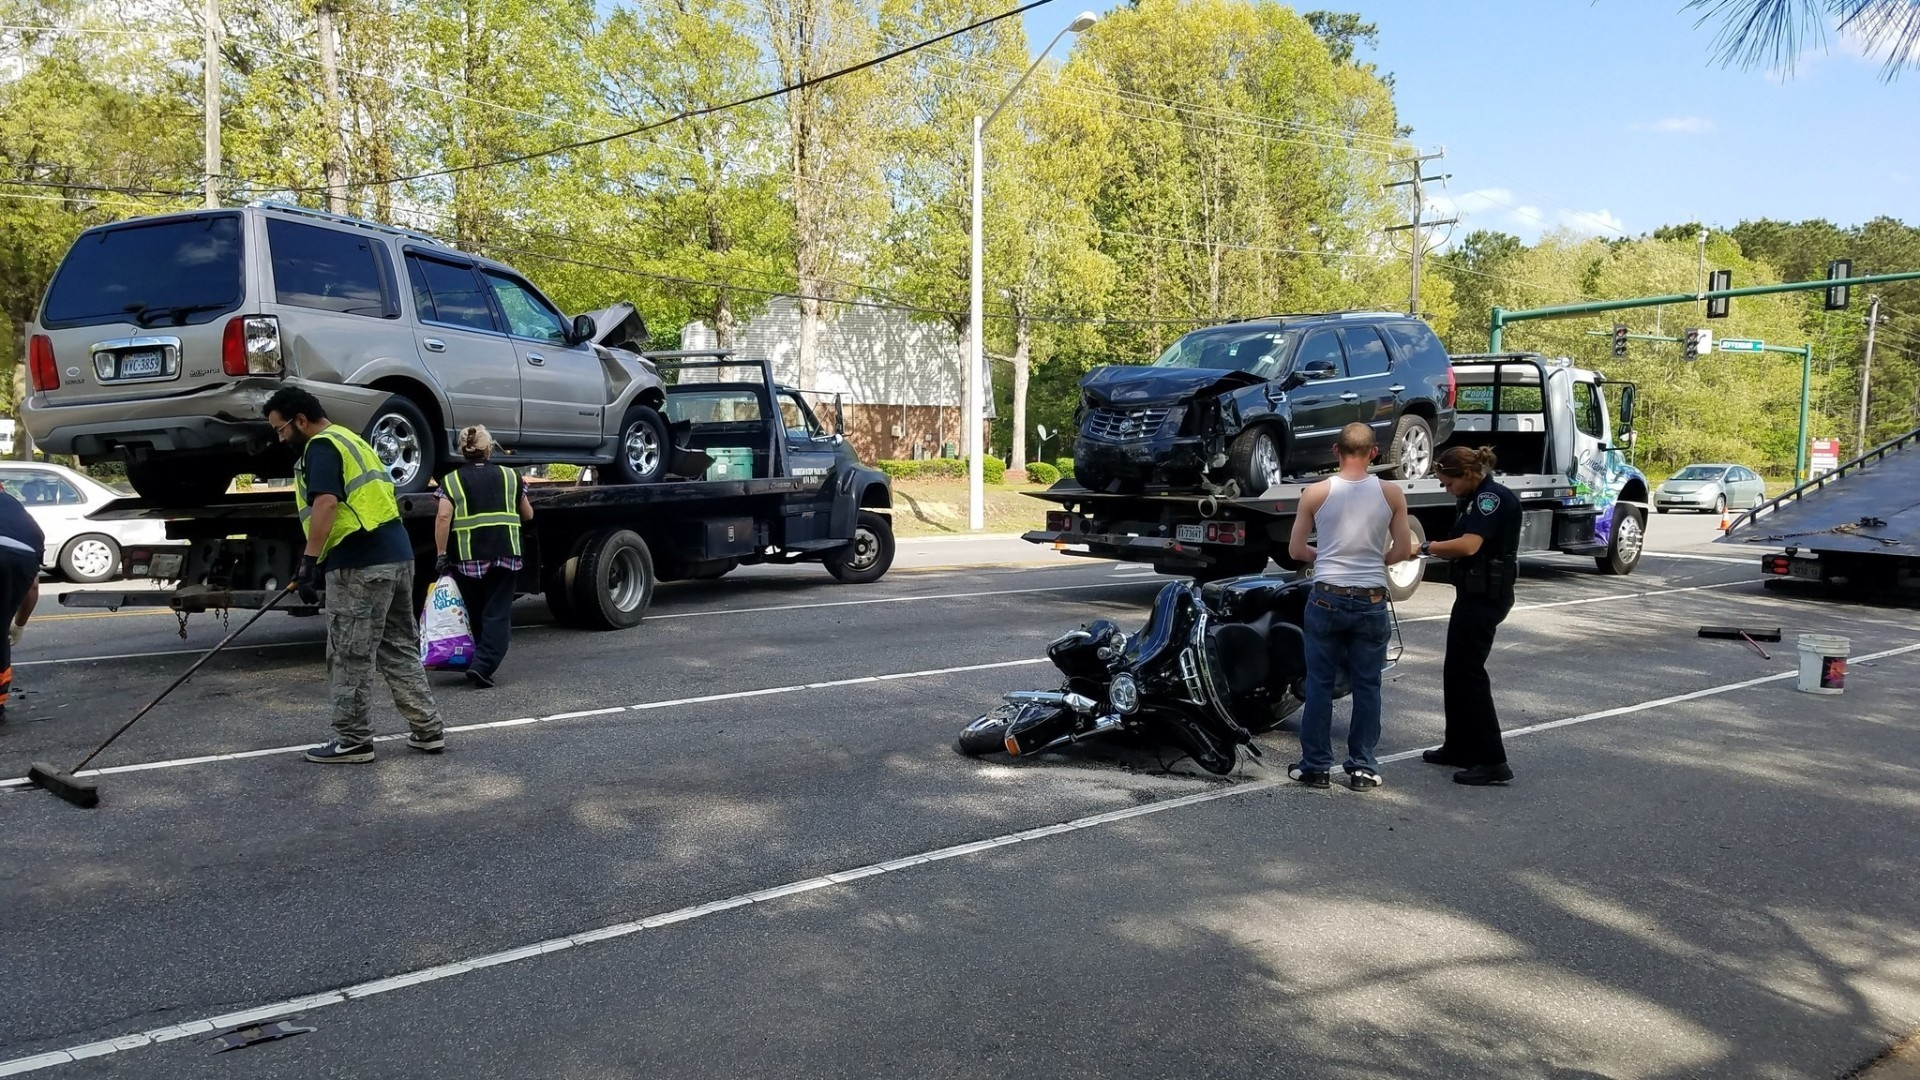 four-vehicle accident in newport news on saturday - daily press